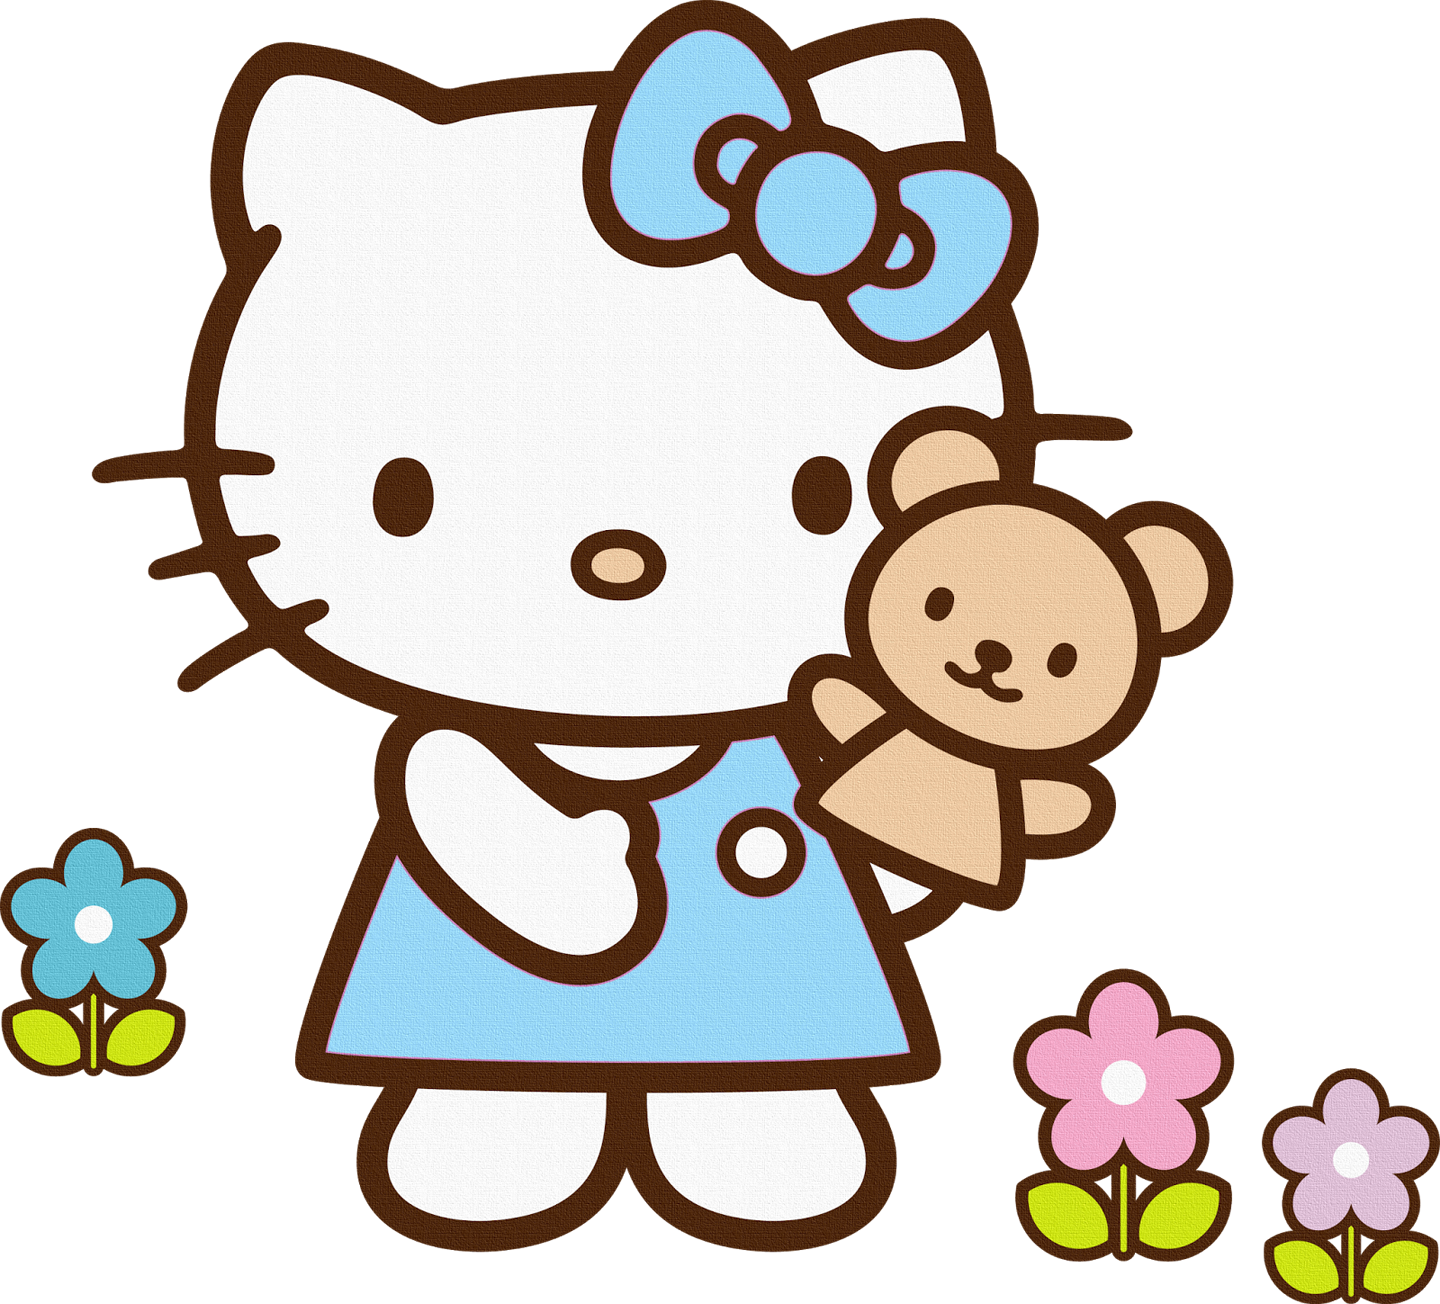 Amazing Wallpaper Hello Kitty Animated - e517b2ef28115a868df0fbd73e6a805b  Gallery_846227.png